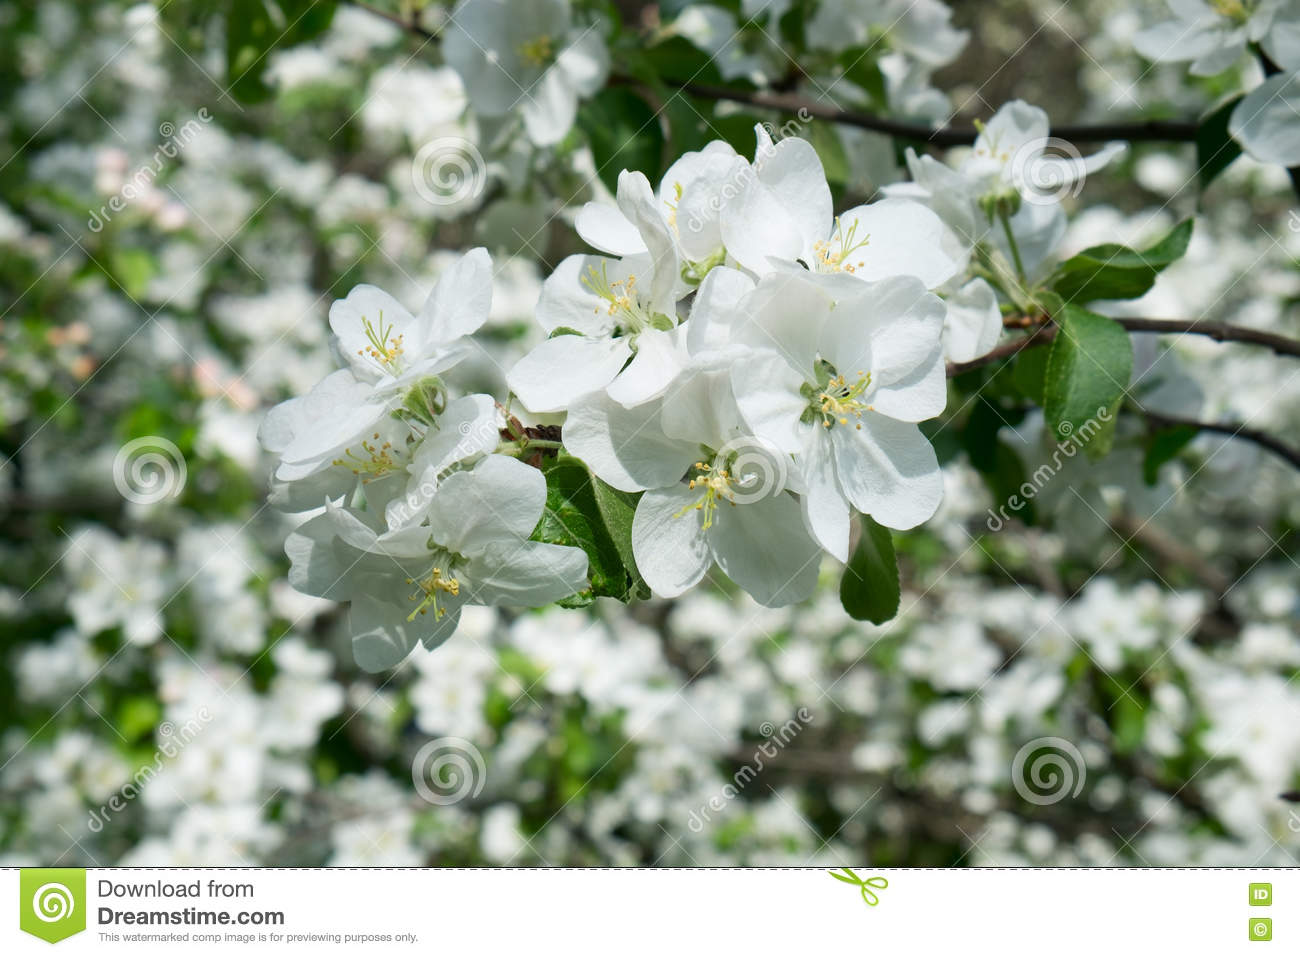 Blossom Tree Over Nature Spring Flowers Horizontal Background Stock